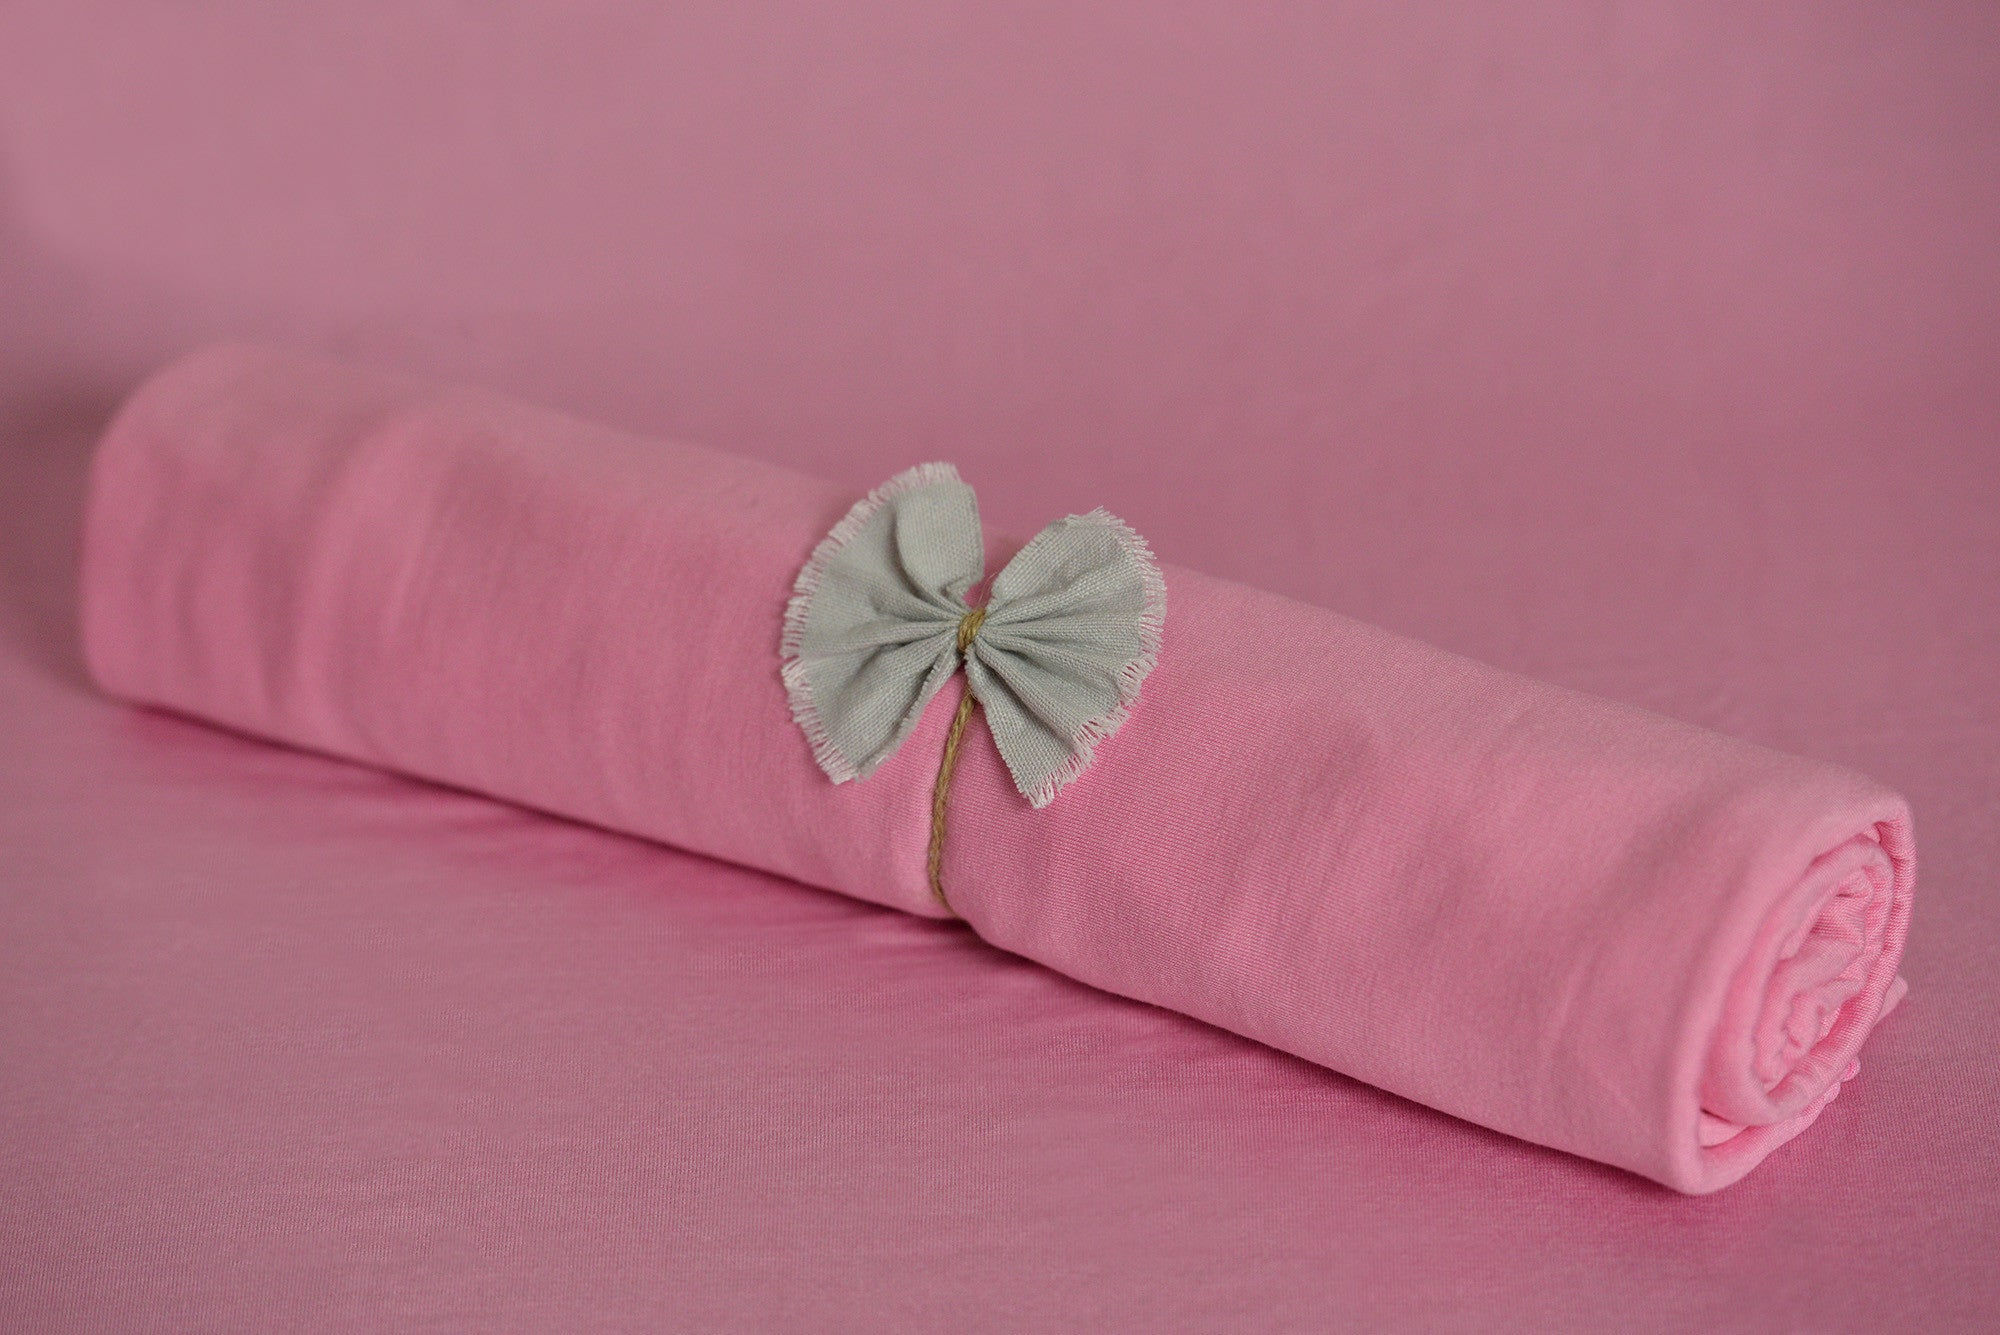 Bean Bag Fabric - Smooth - Pink-Newborn Photography Props